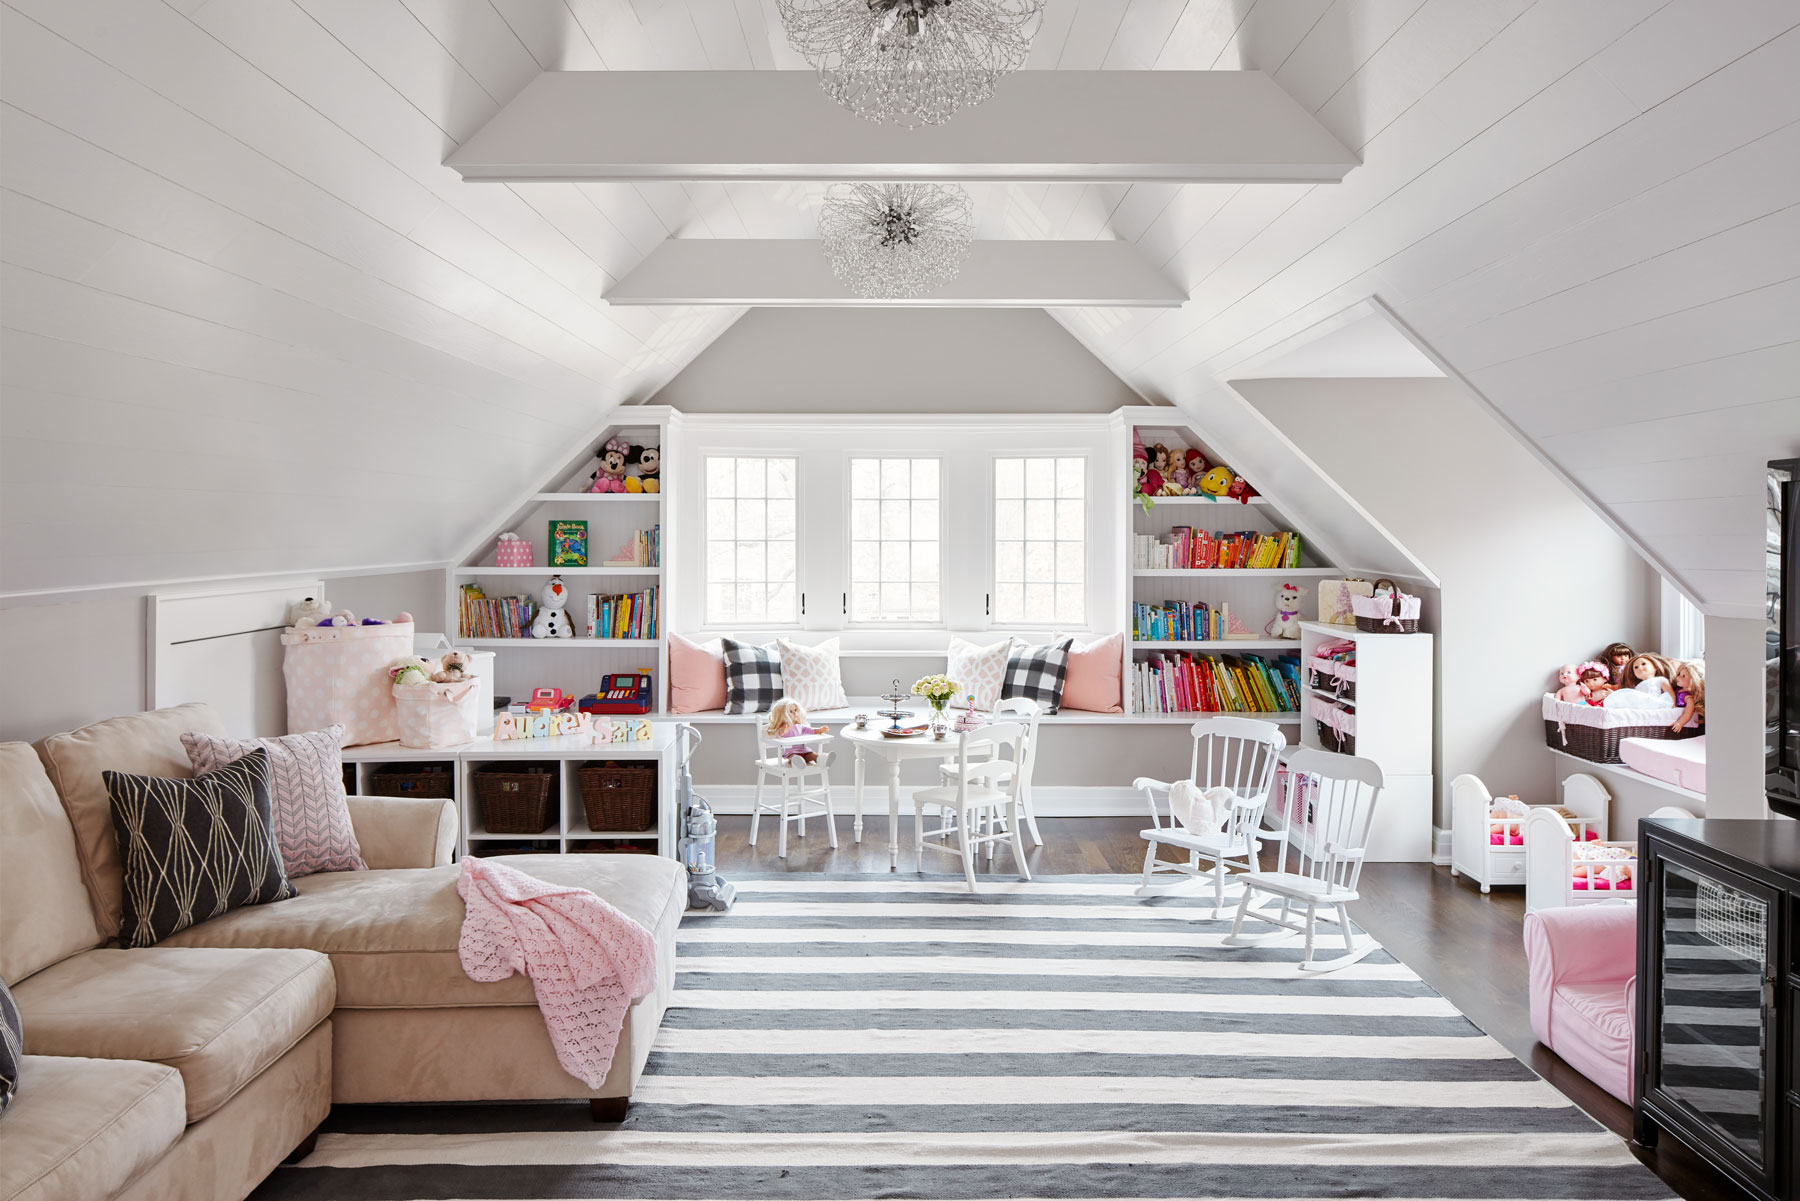 The playroom, for the family's three children, is tucked under the eaves at the top of the house, in what used to be the home's attic space.